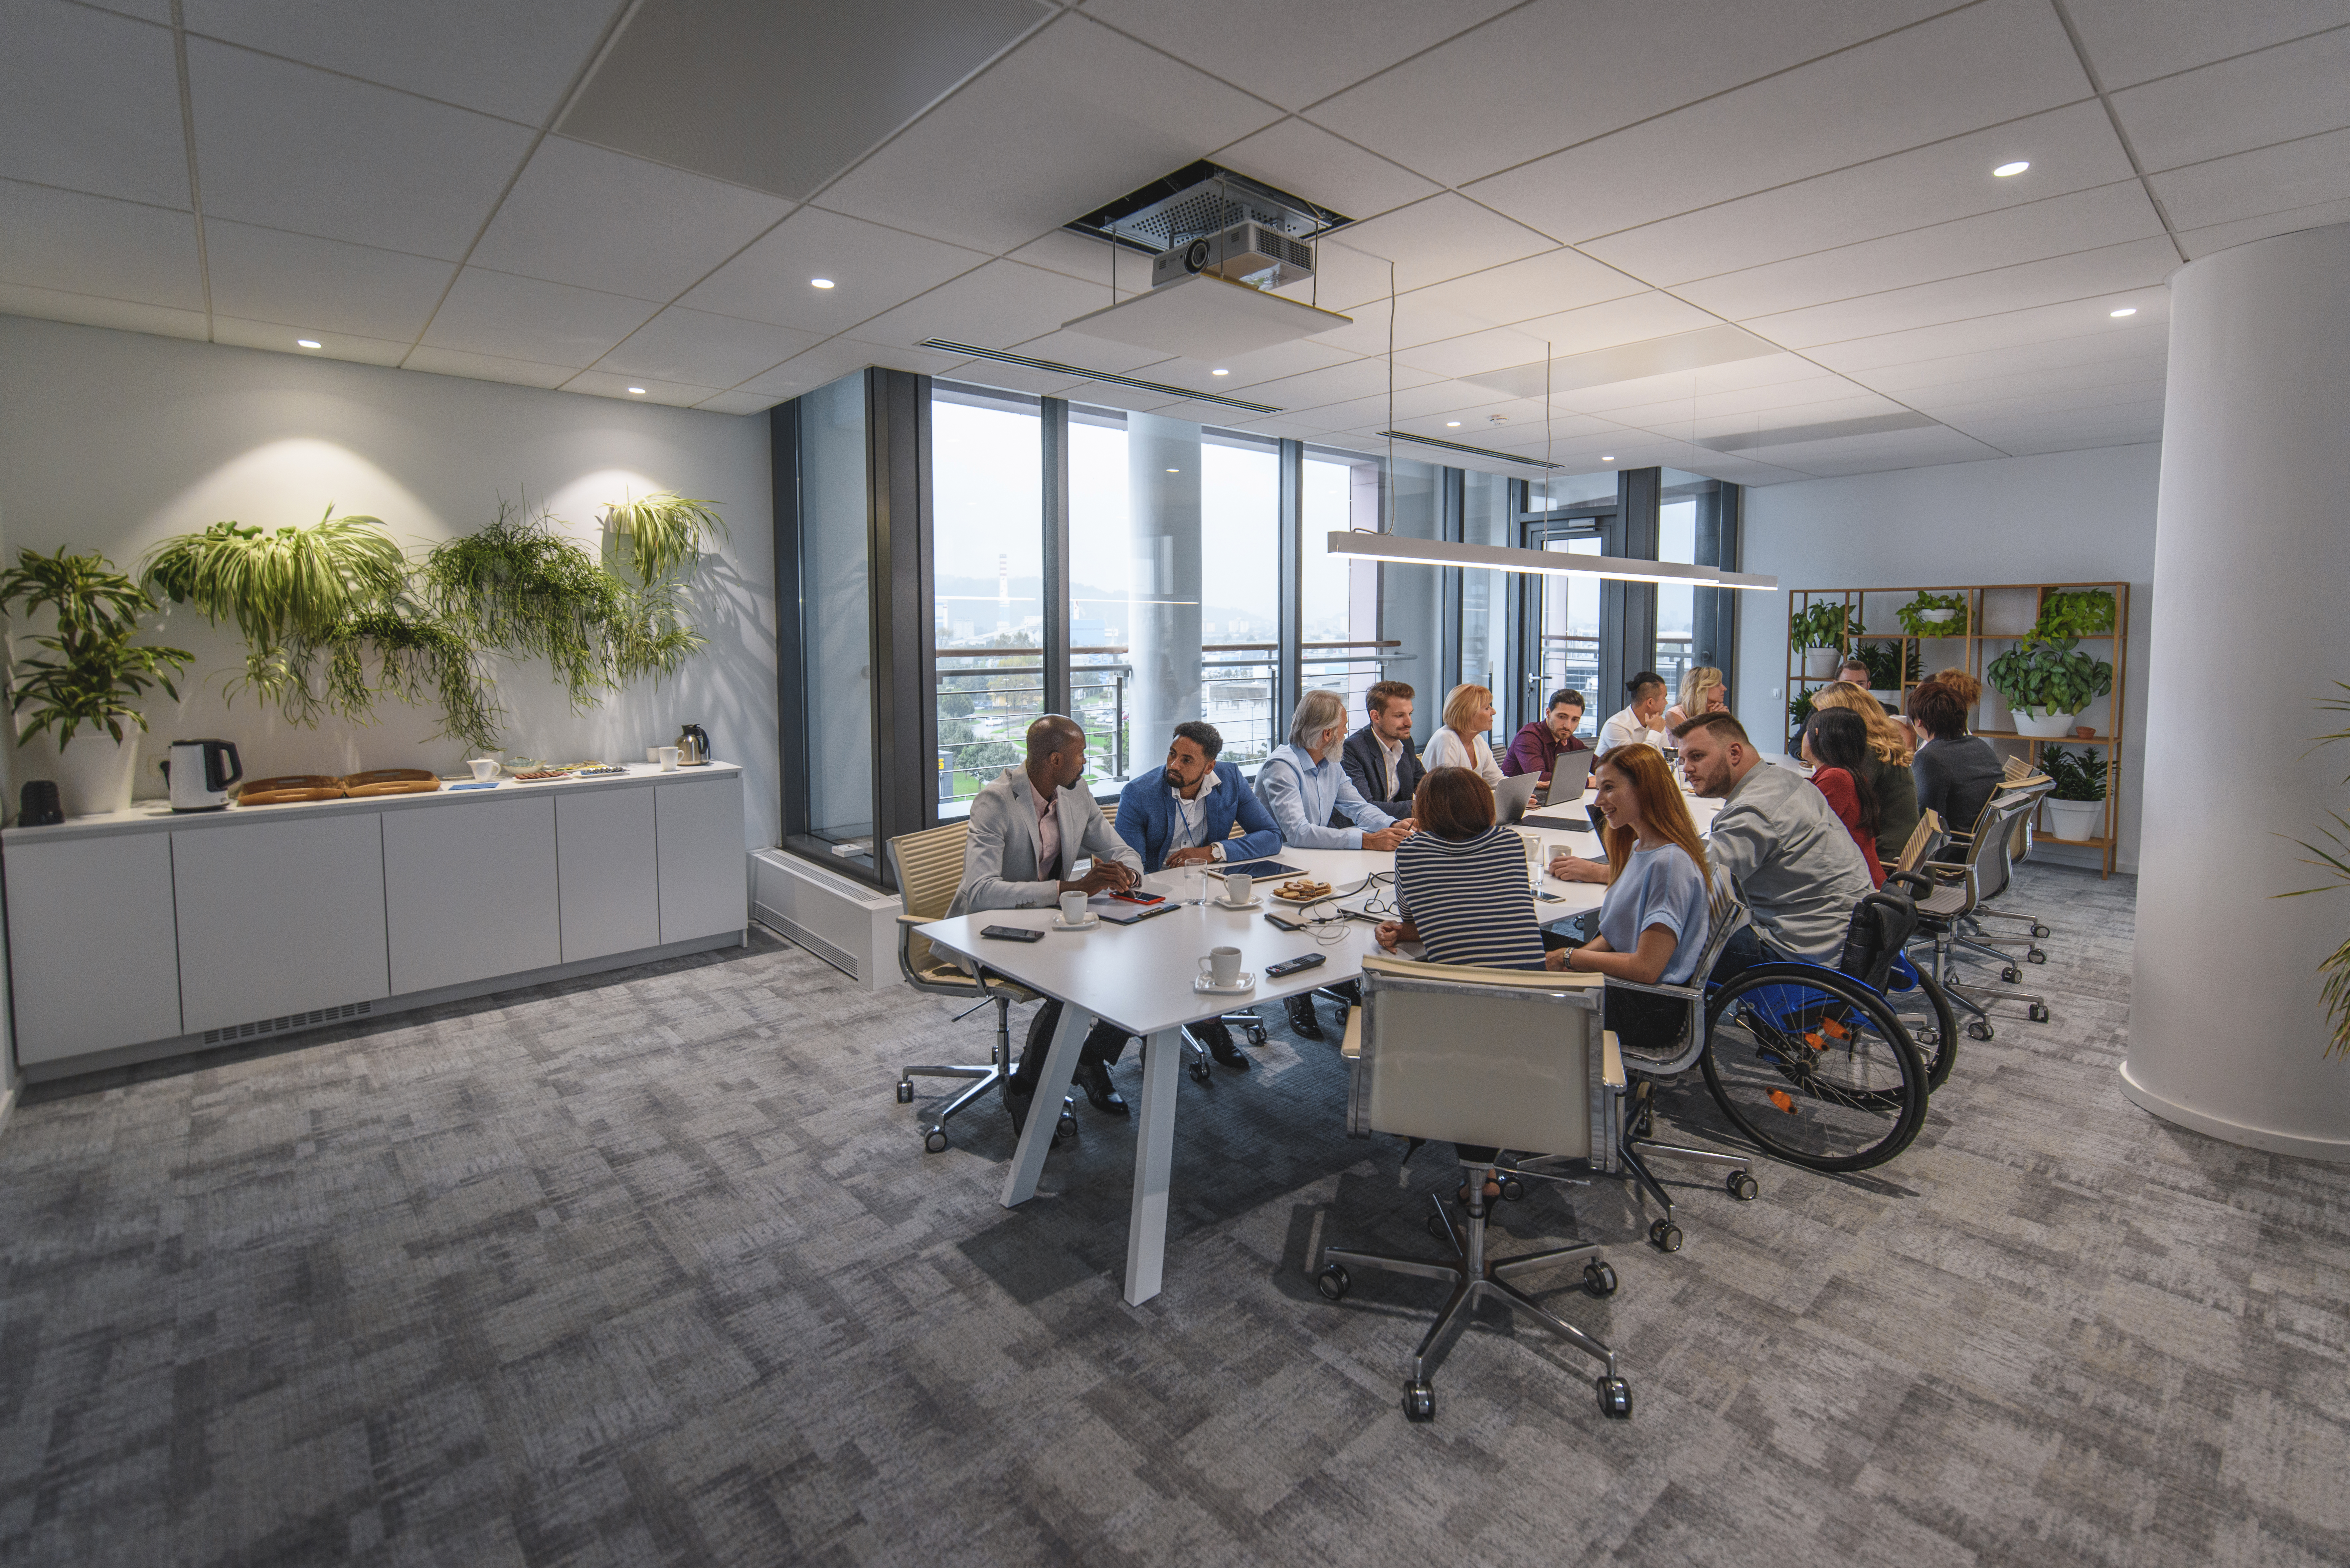 Distant view of a group of people sitting at conference table and talking with each other.